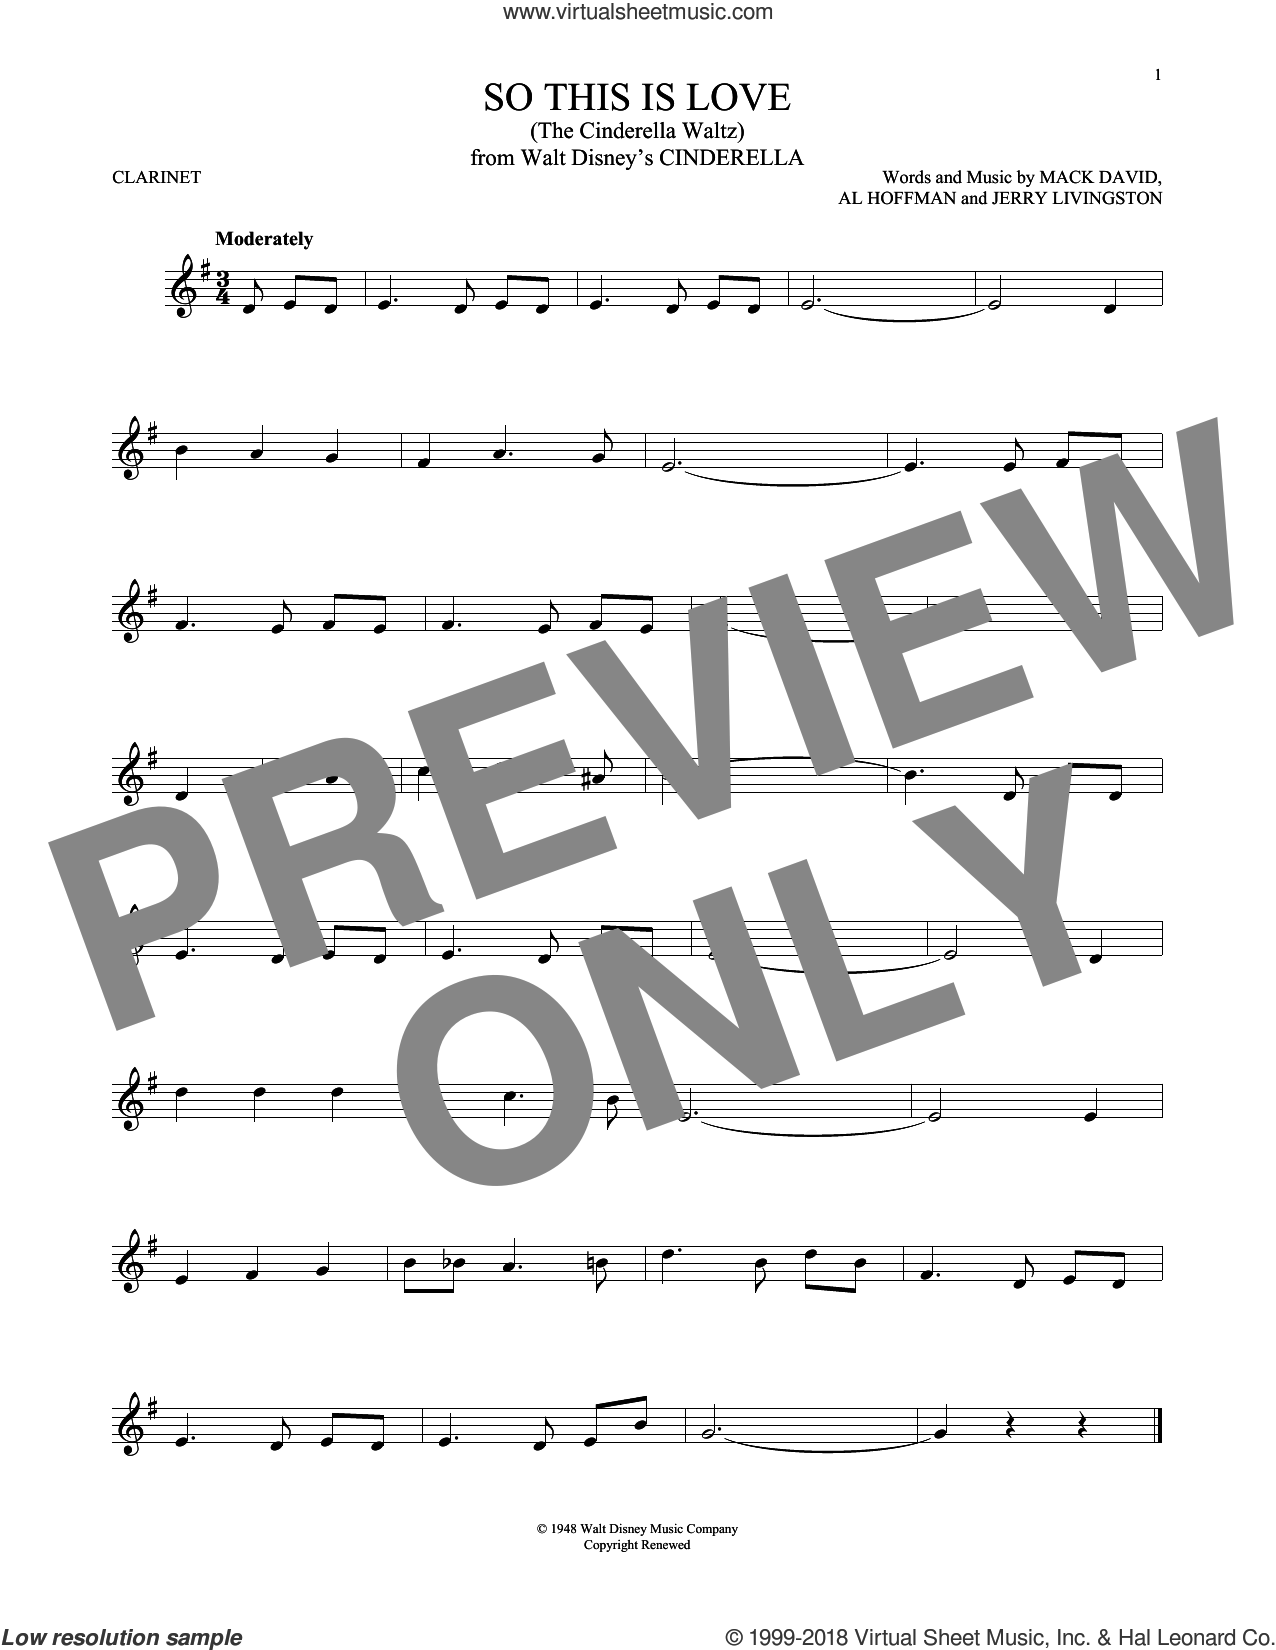 So This Is Love sheet music for clarinet solo by Al Hoffman, James Ingram, Jerry Livingston, Mack David and Mack David, Al Hoffman and Jerry Livingston, intermediate skill level